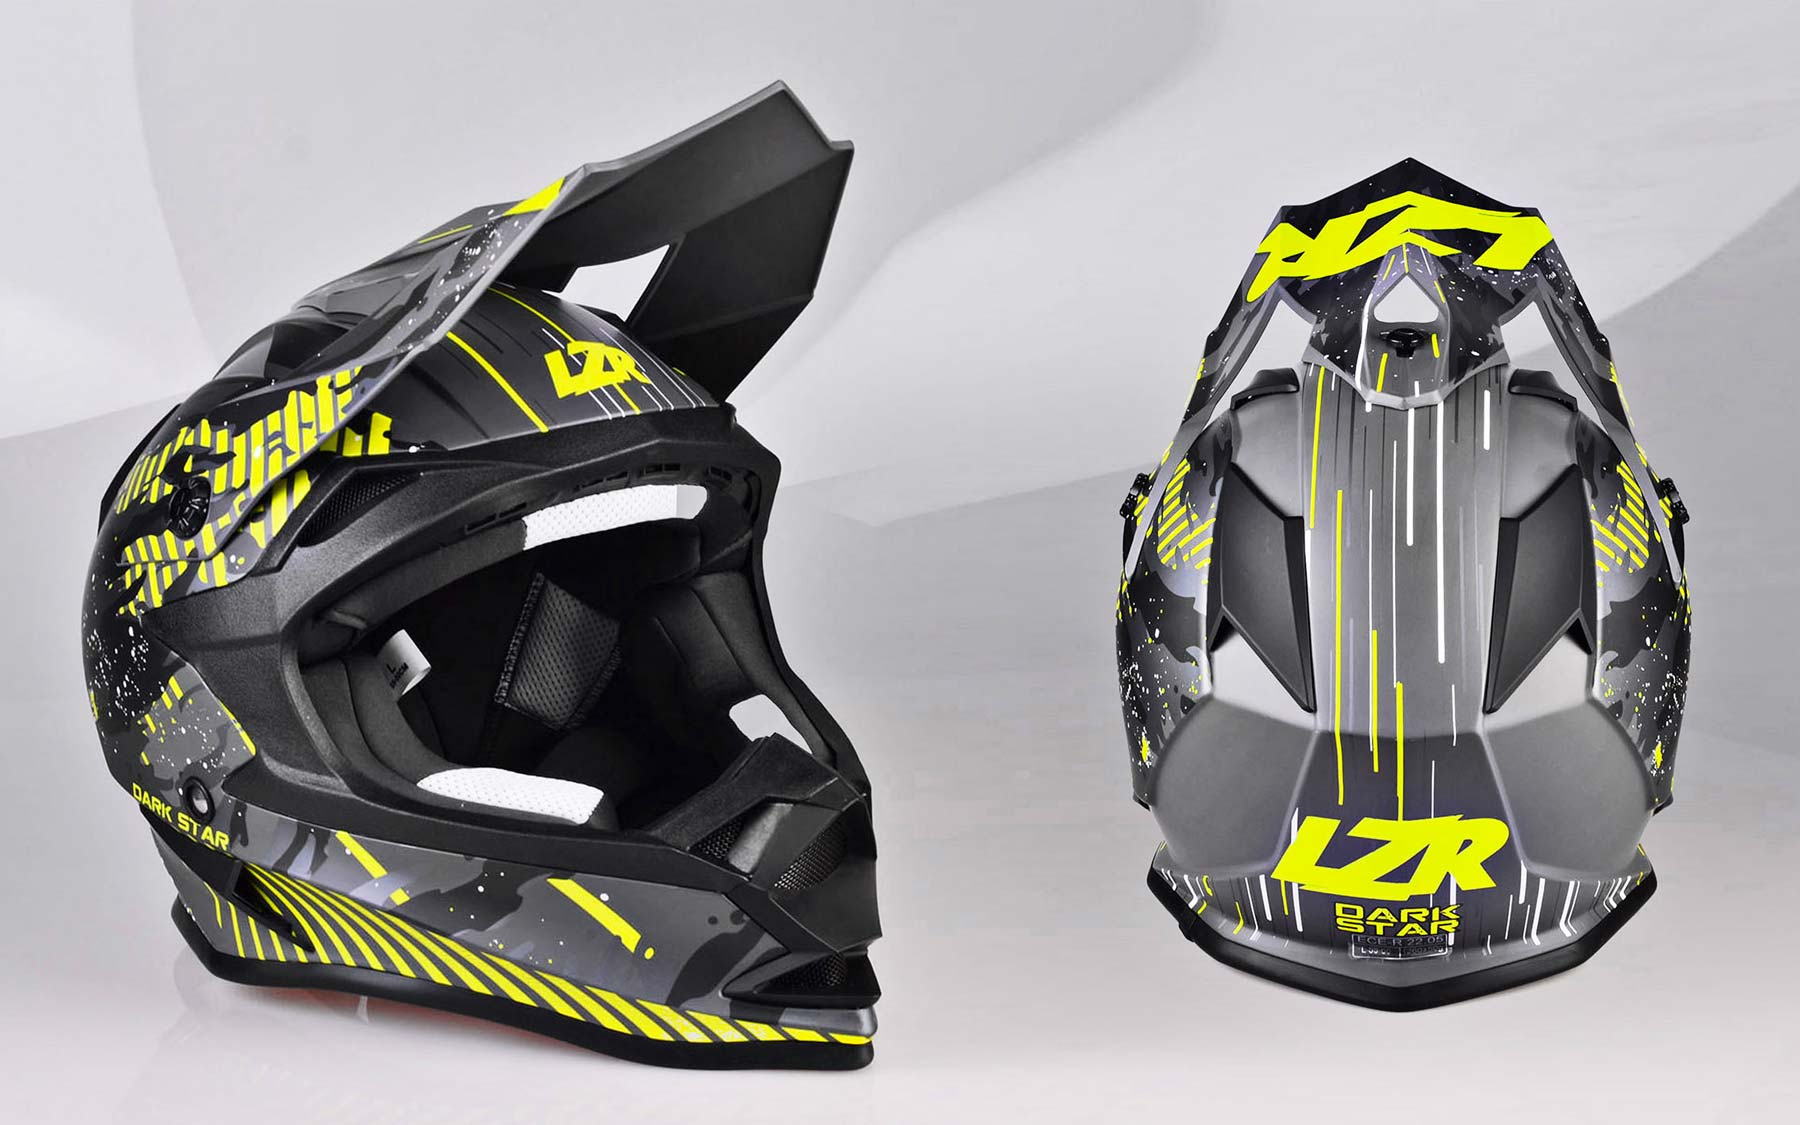 Launching of the entry-level range LZR, with touring, off-road, urban-style and adventure helmets.